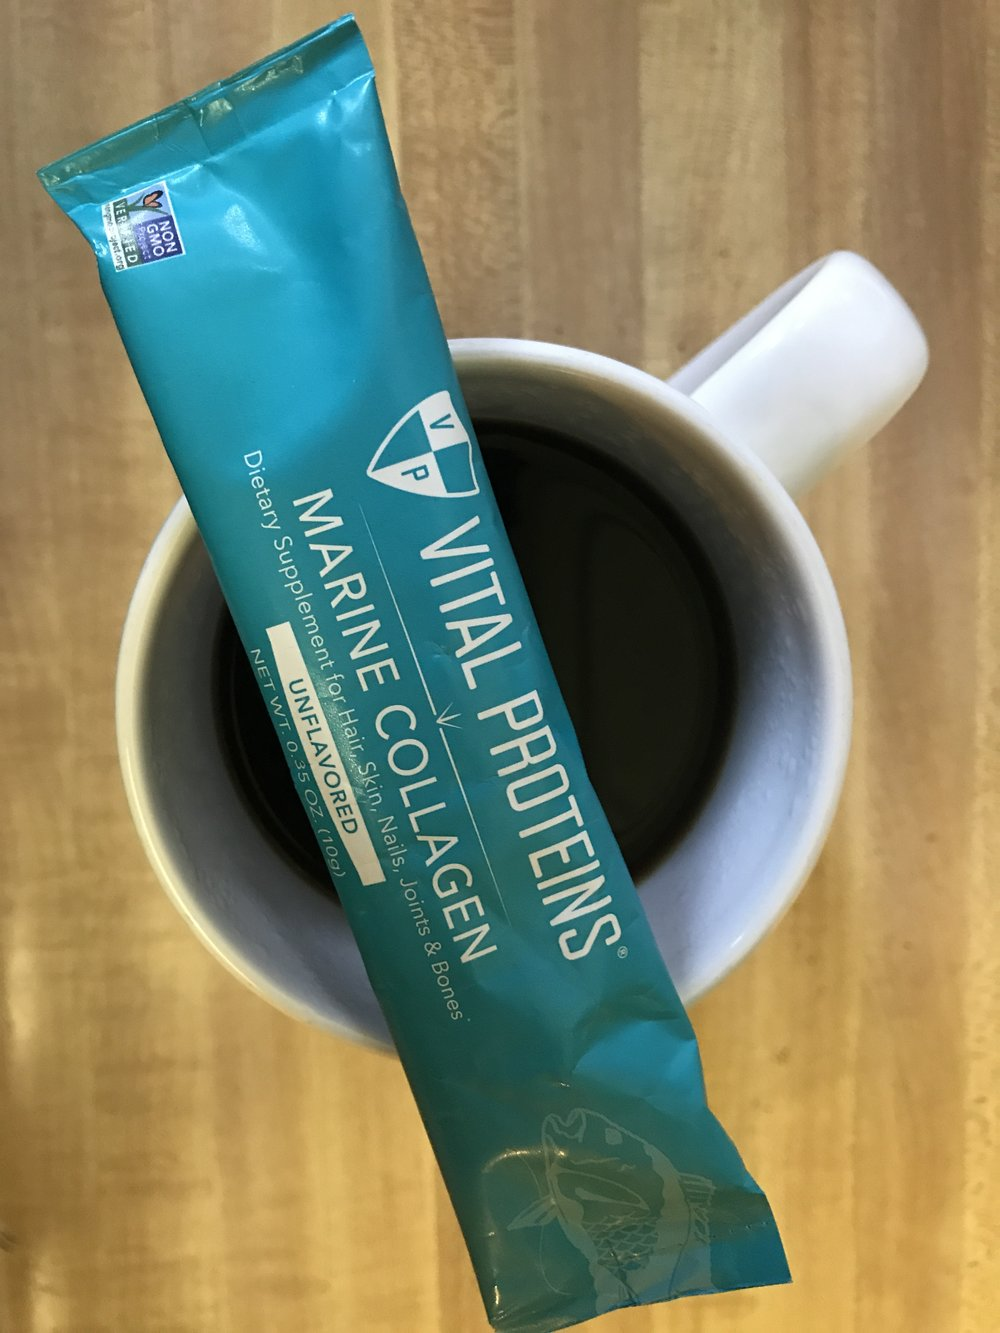 Coffee: 16 oz of half-caf, two scoops of Vital Protein Collagen Peptides, 1/4 cup of So Delicious Unsweetened Coconut milk, 1/4t of Organic Coconut oil combined